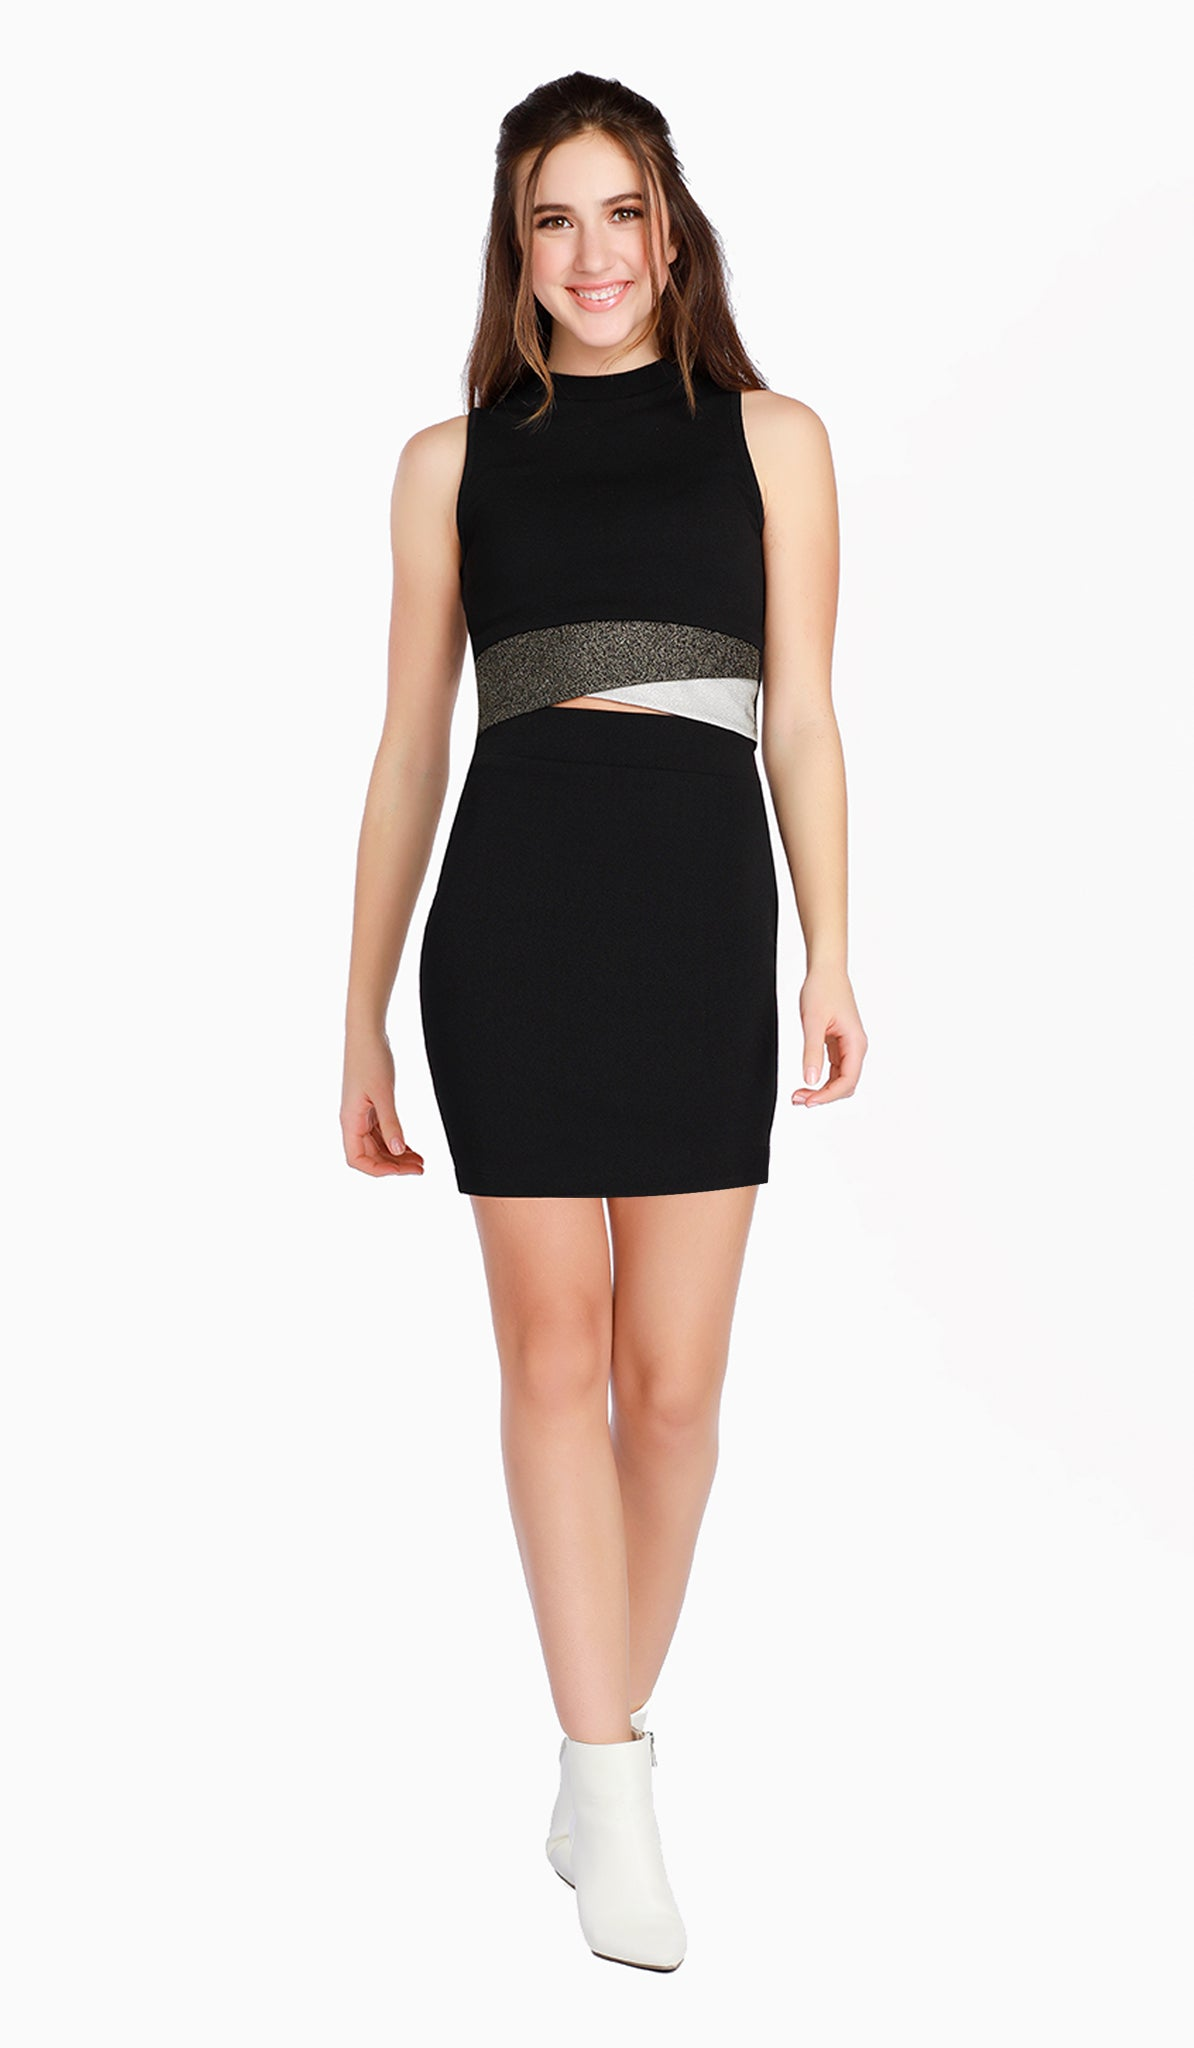 The Sally Miller Nina Set | Black textured stretch knit set with sparkle mesh detail at waist and bodycon skirt  | Luxury tween dresses & juniors dresses for all occasions and events